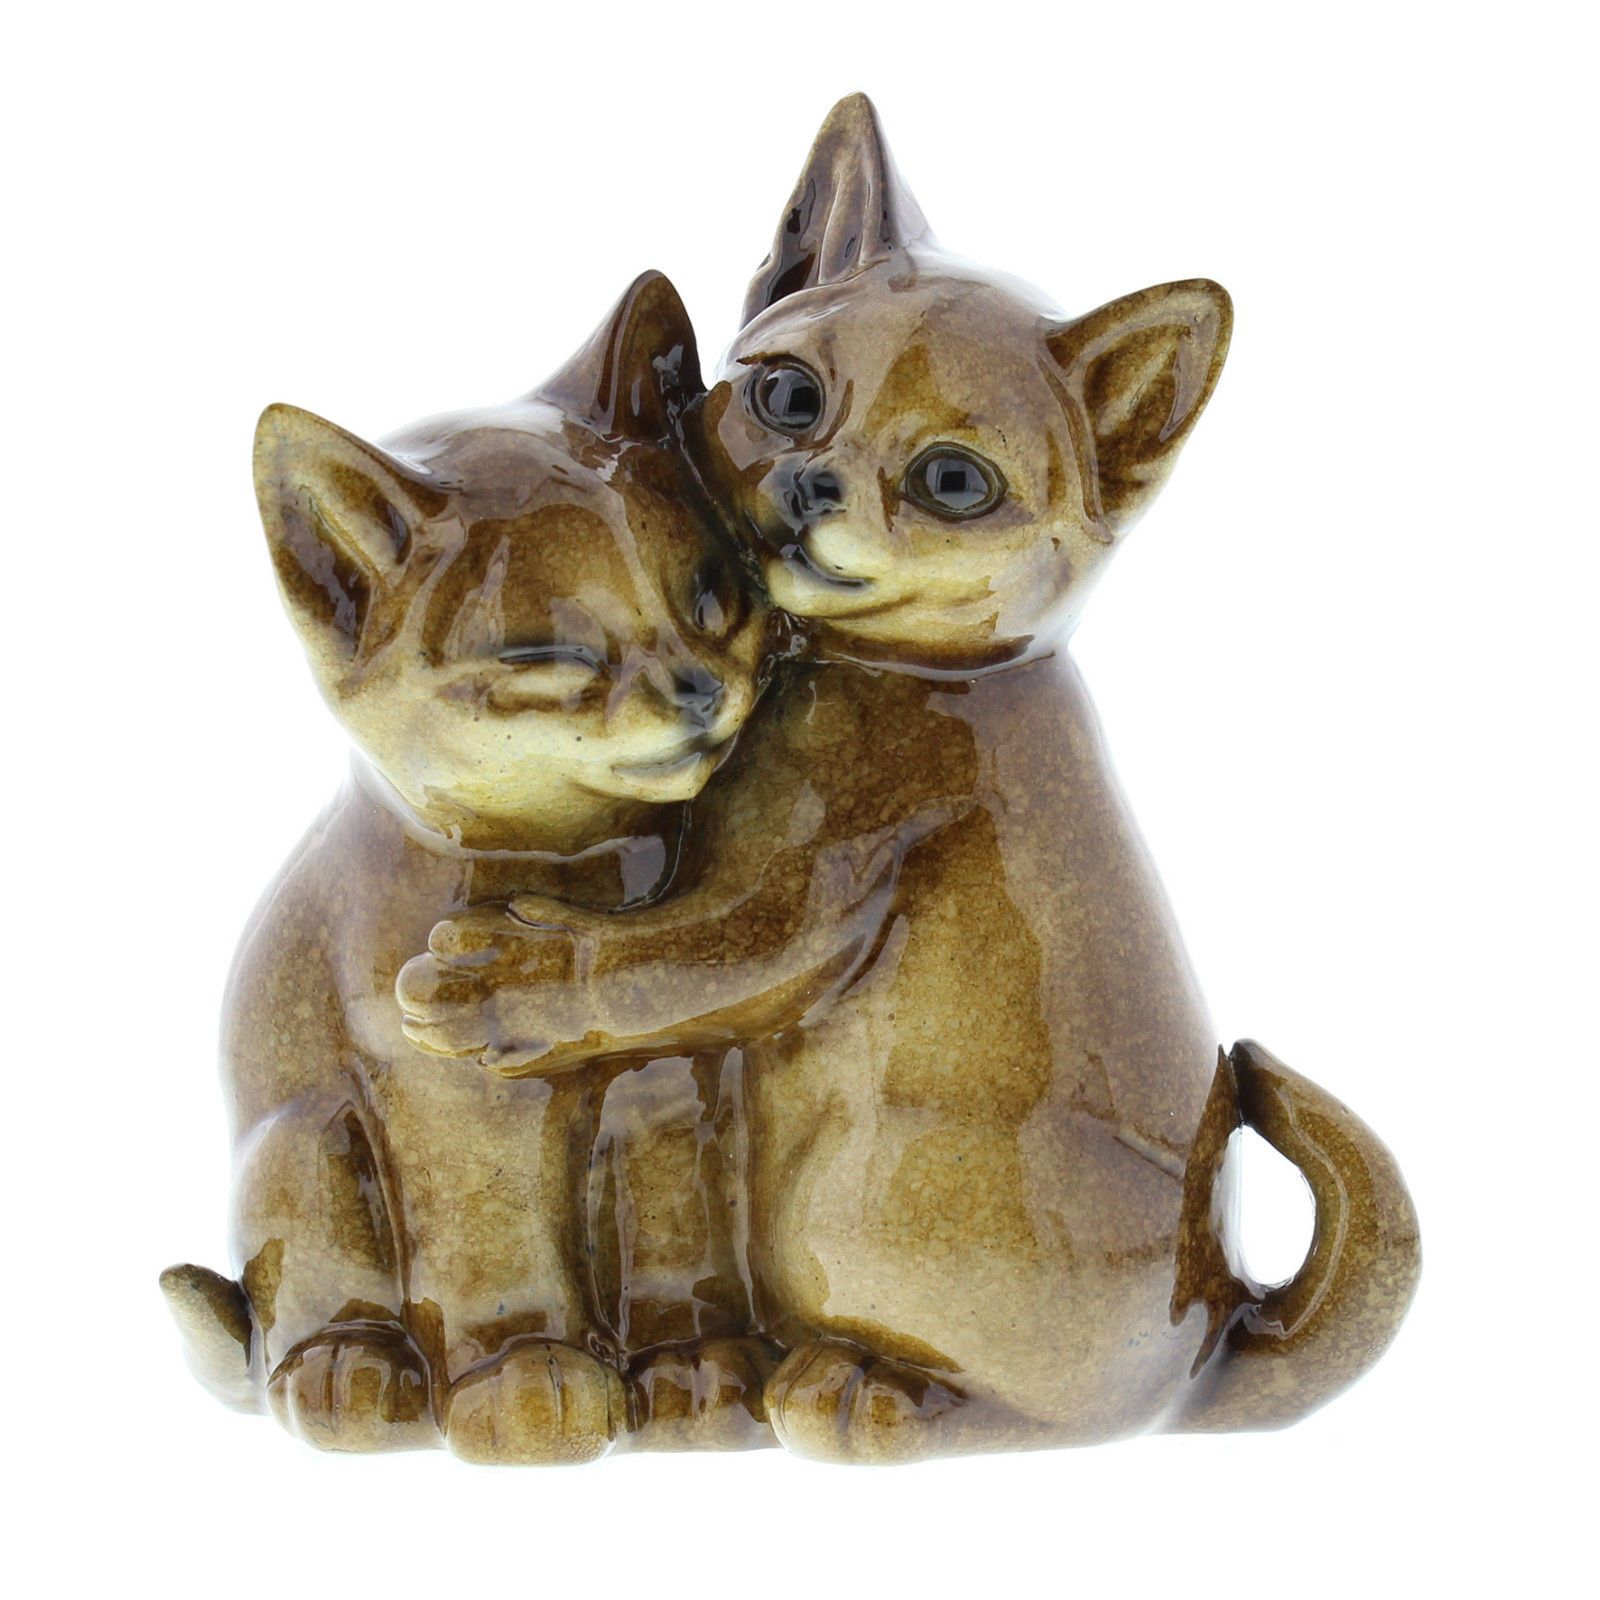 Tabby cat ornament - Pair Of Kittens Cat Ornament By Juliana Natural World Kittens Made From A Resin Material With